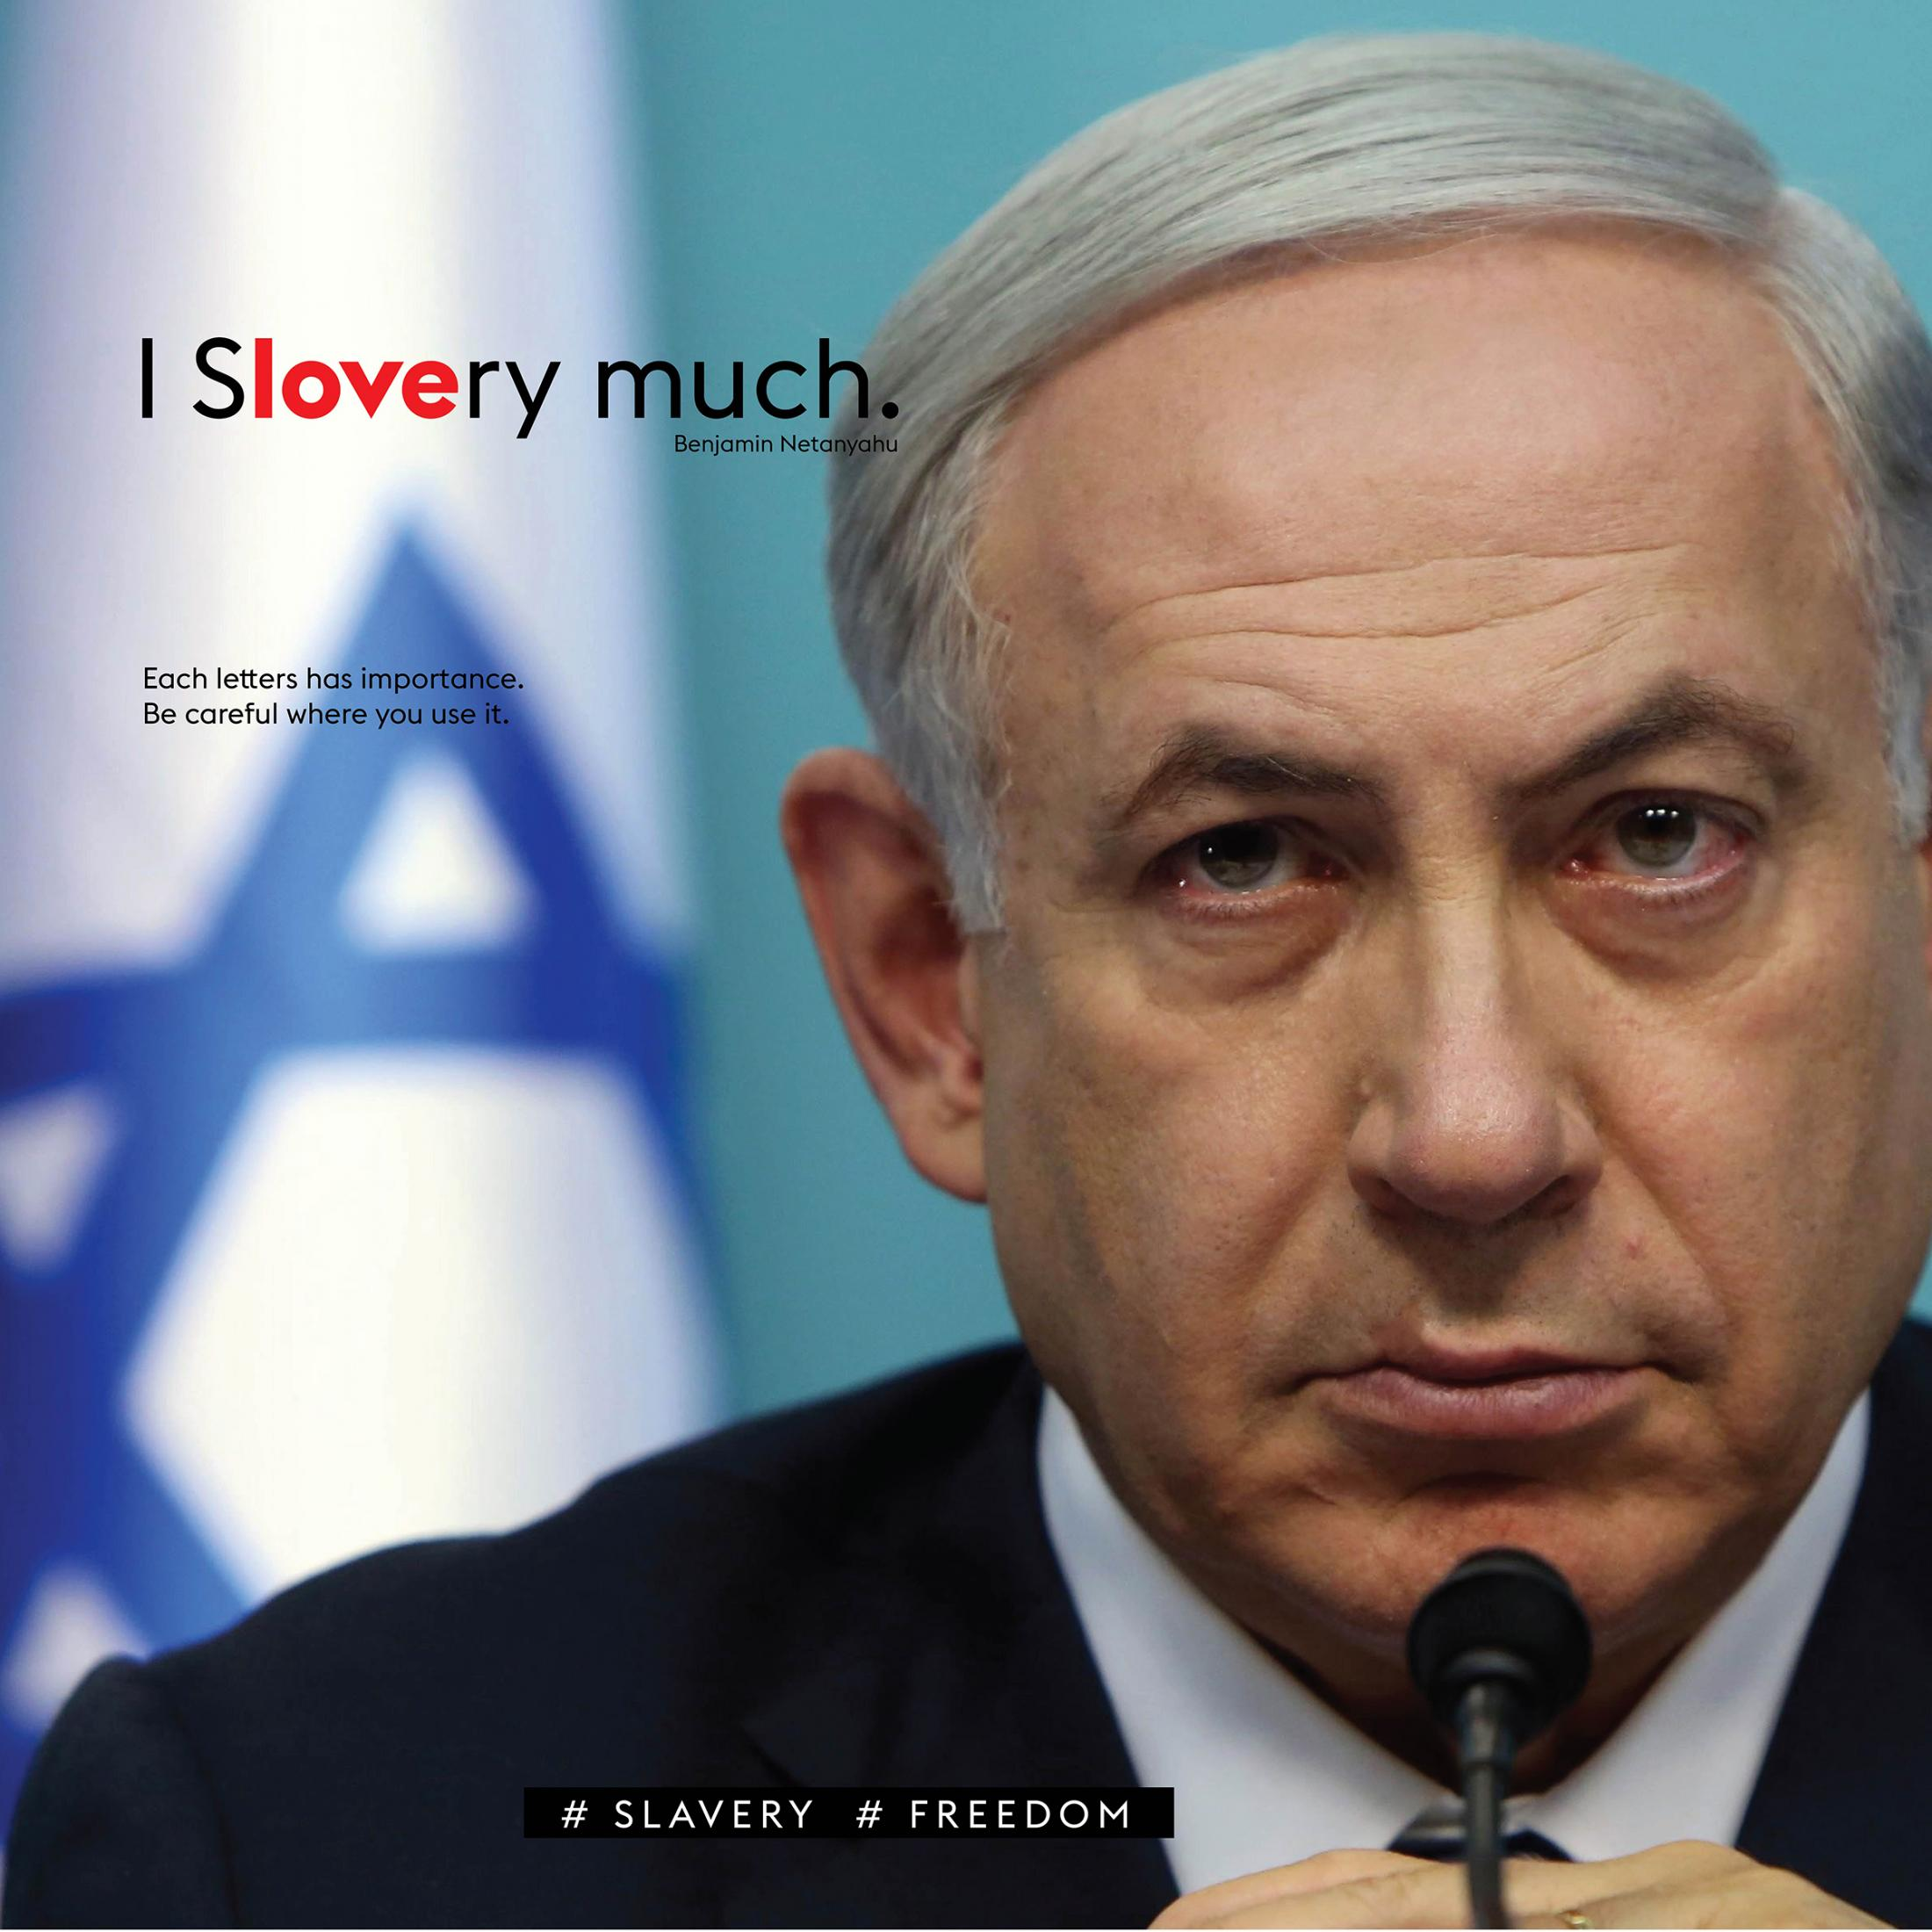 From Slavery to Slovery, 2